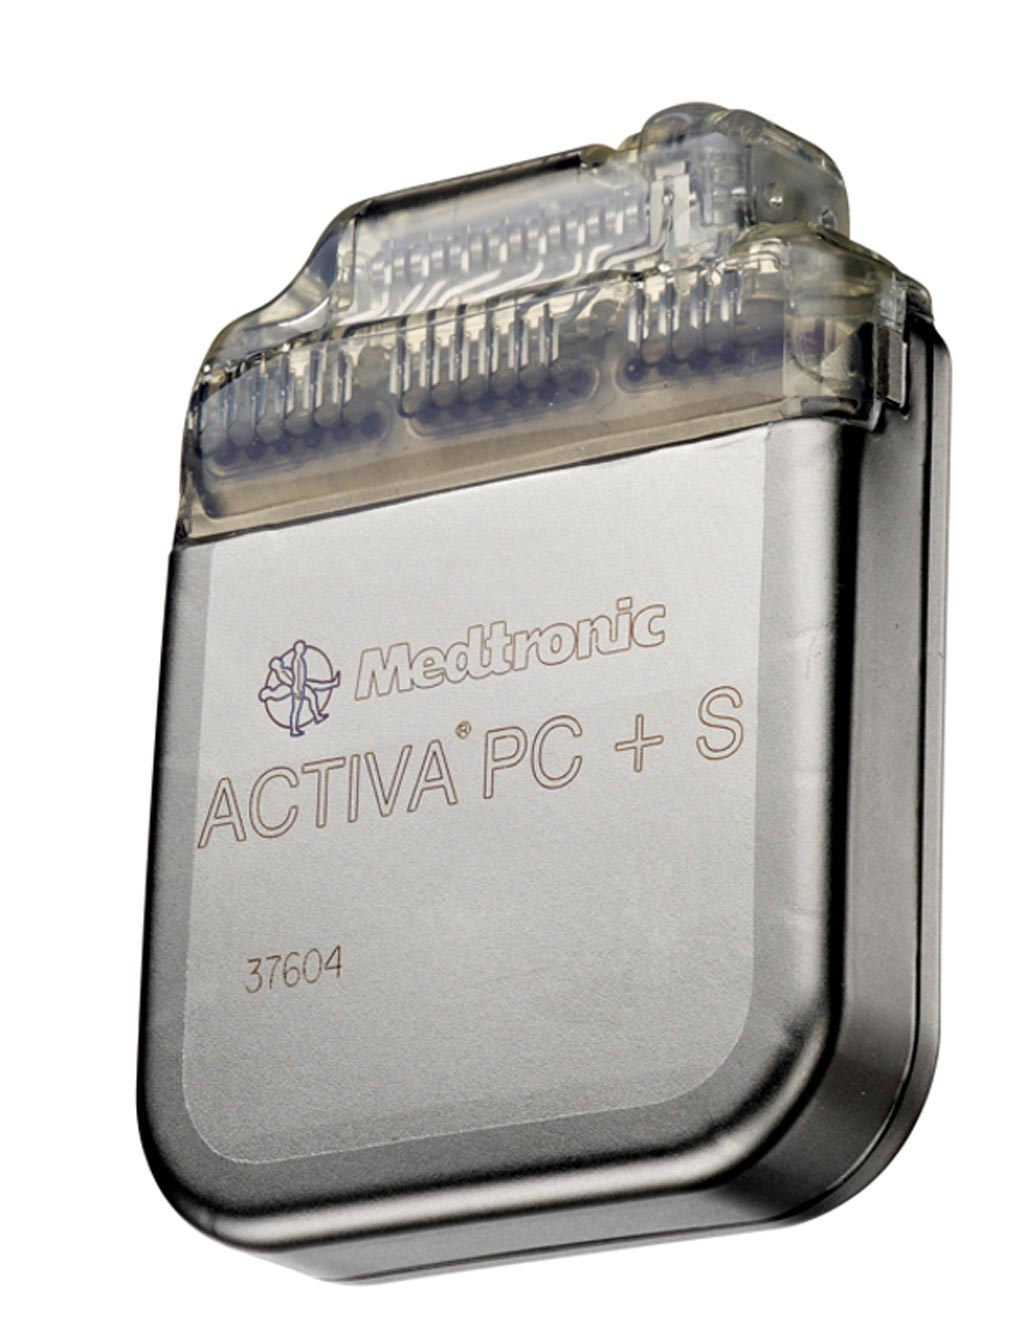 Image: The Activa PC+S DBS System (Photo courtesy of Medtronic).